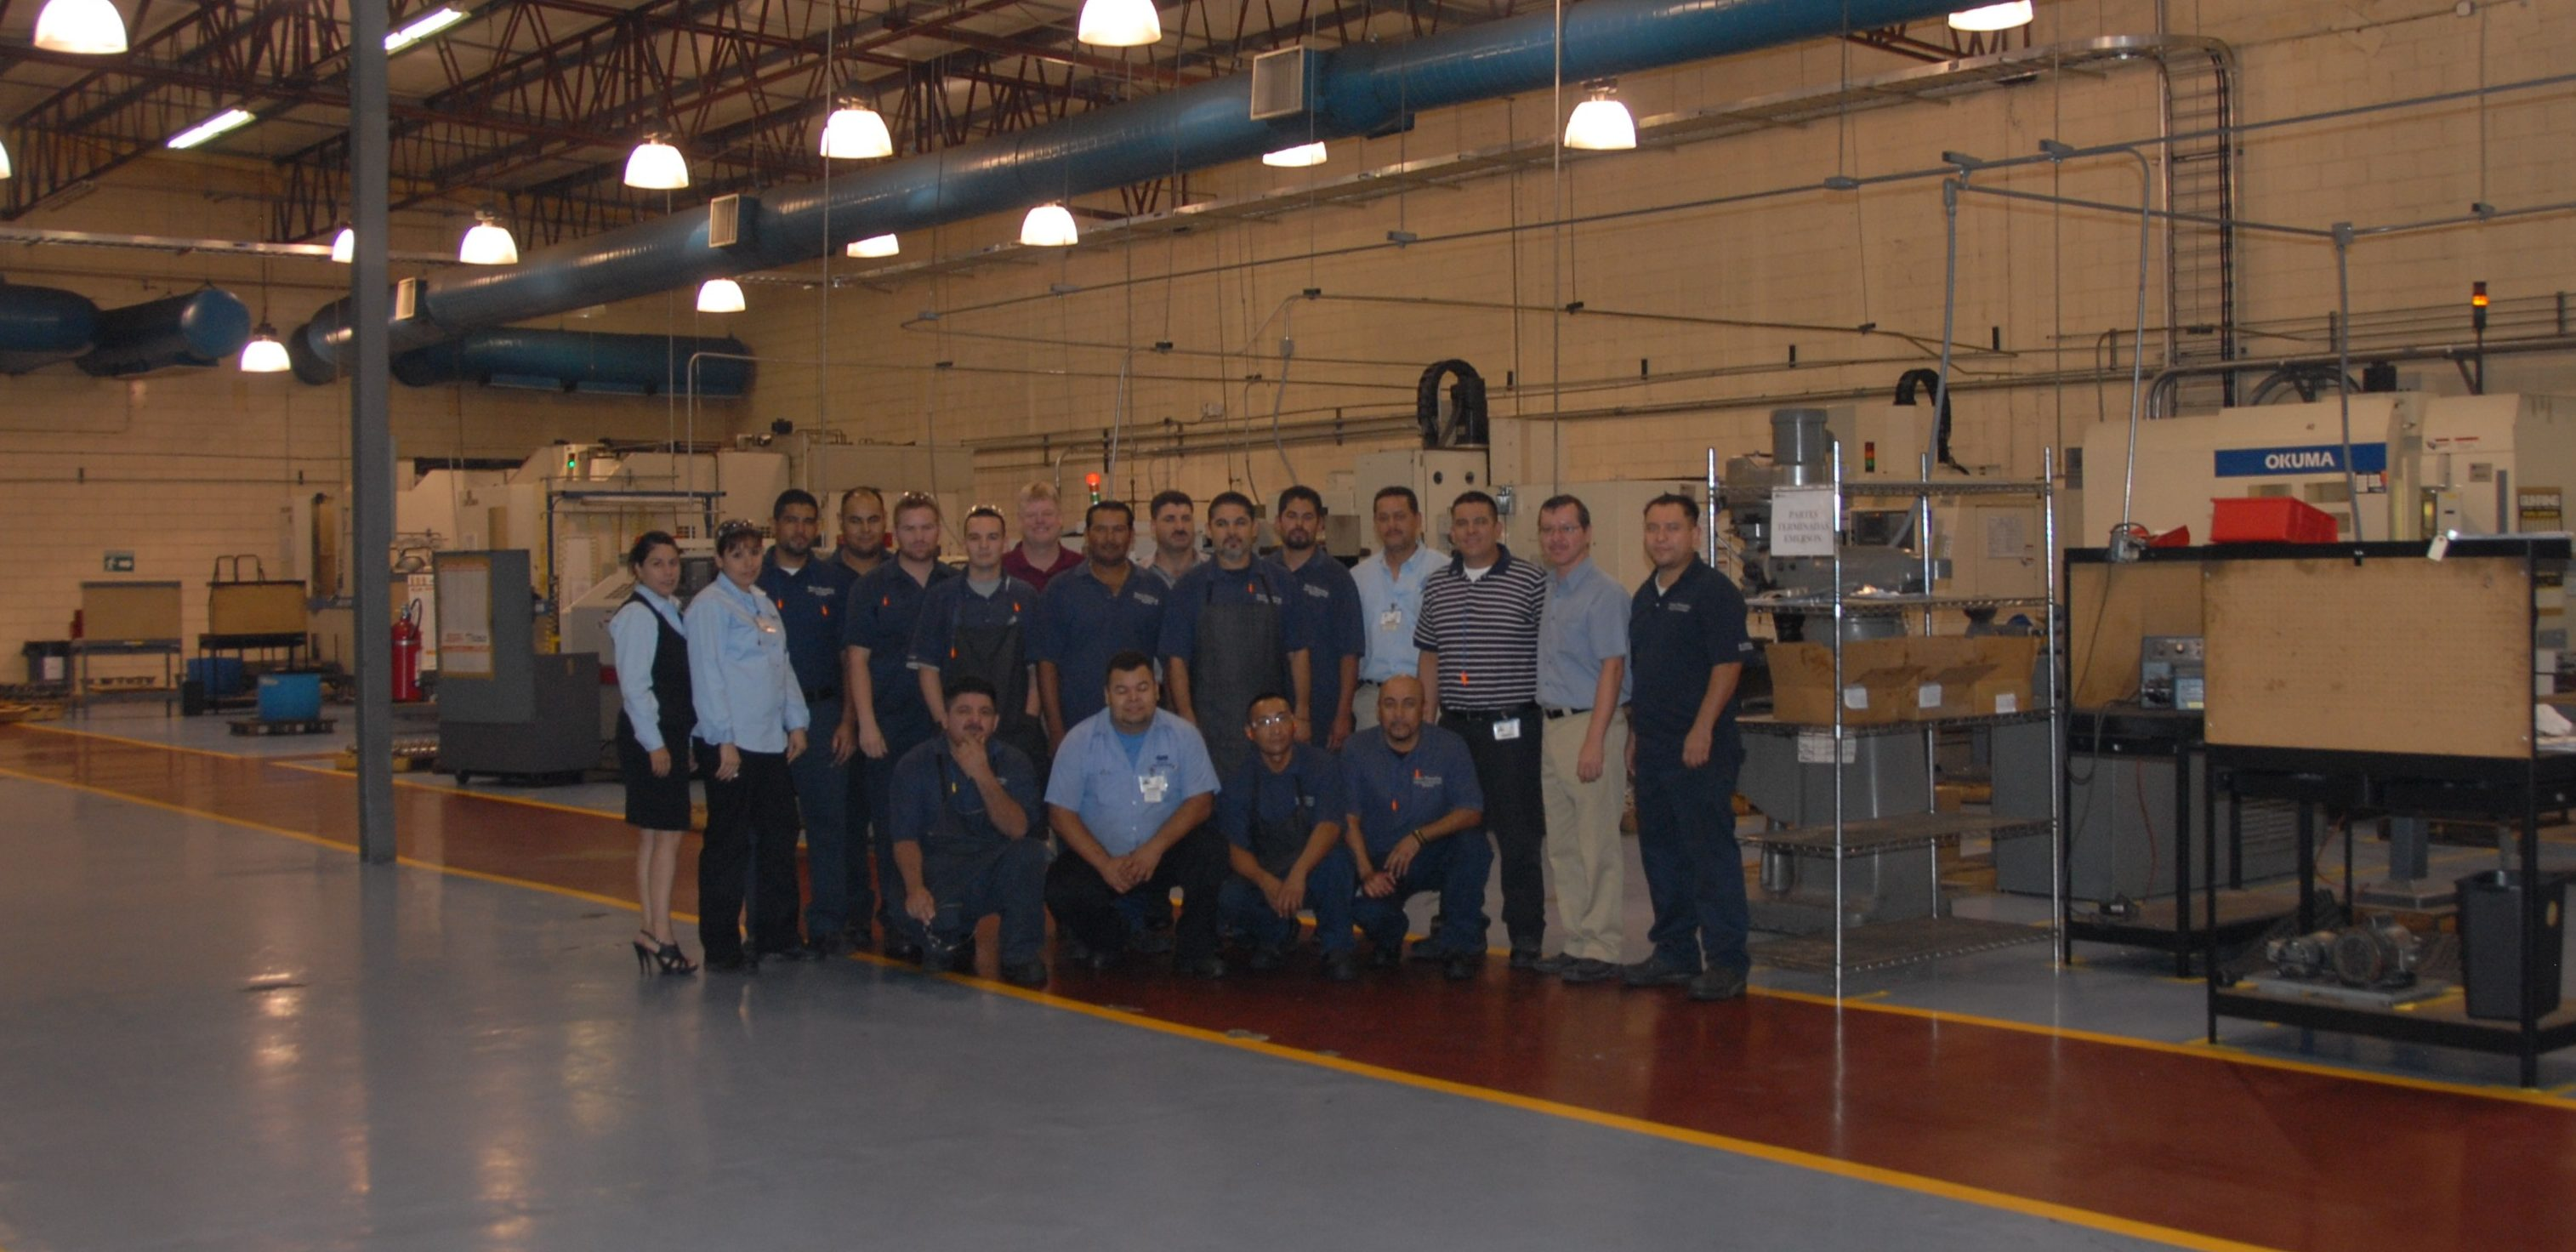 Our Mexicali team and facility